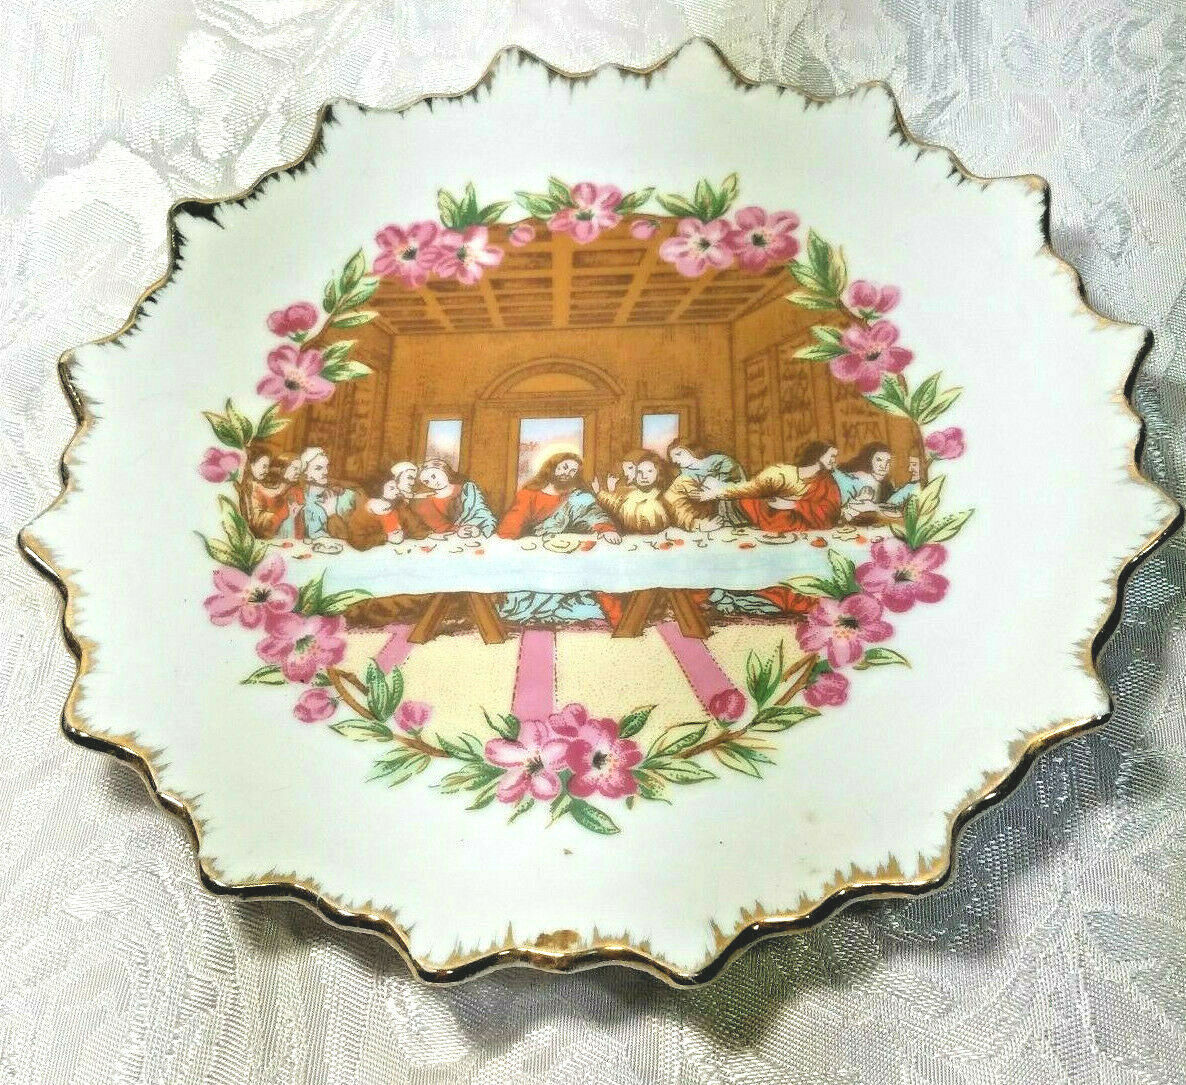 Vintage Last Supper - Decorative Plate for Walls 7""